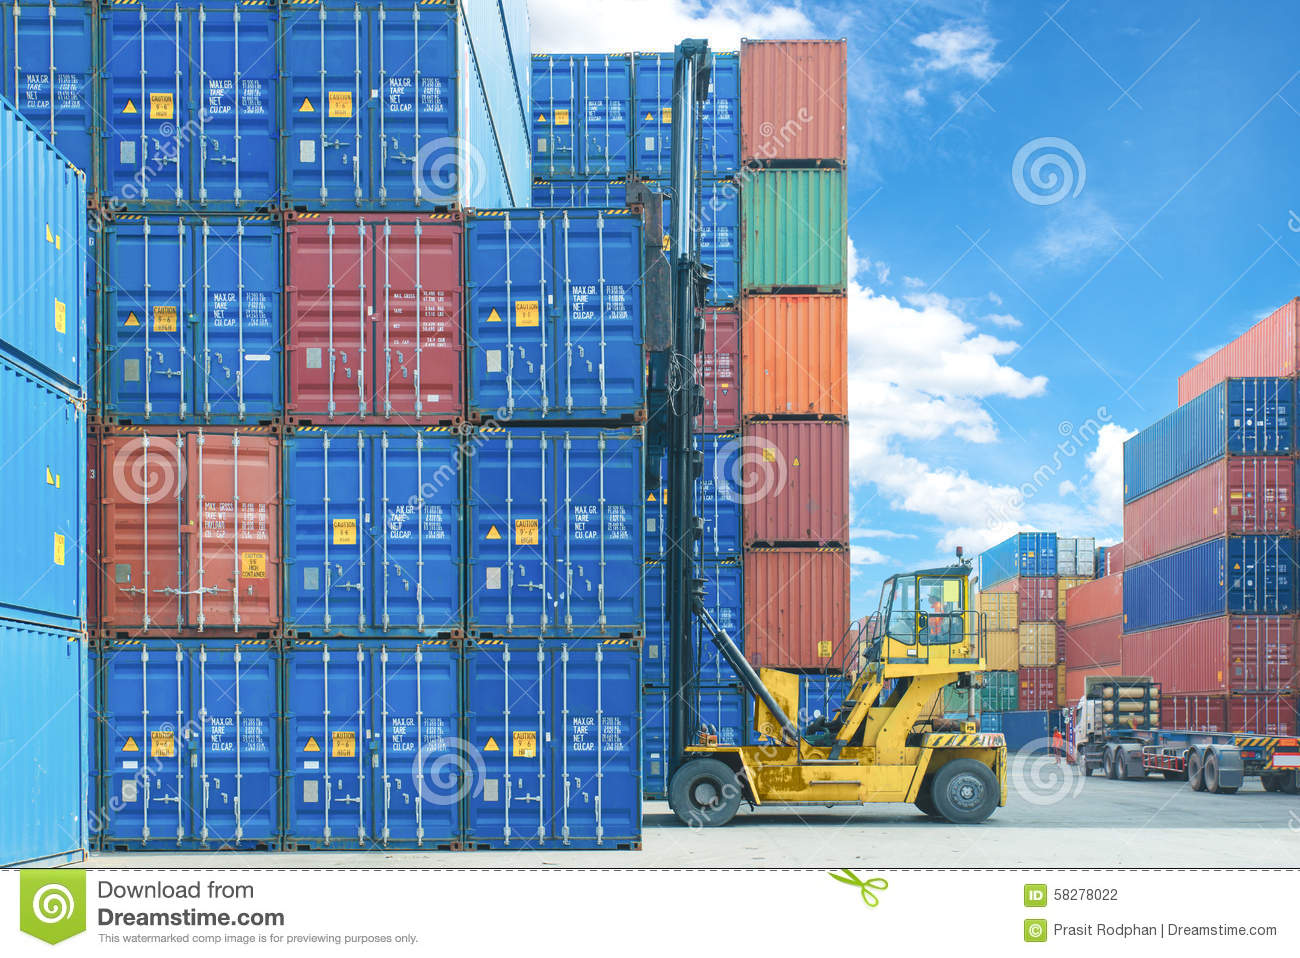 Forklift handling container box loading to truck in import export logistic zone.